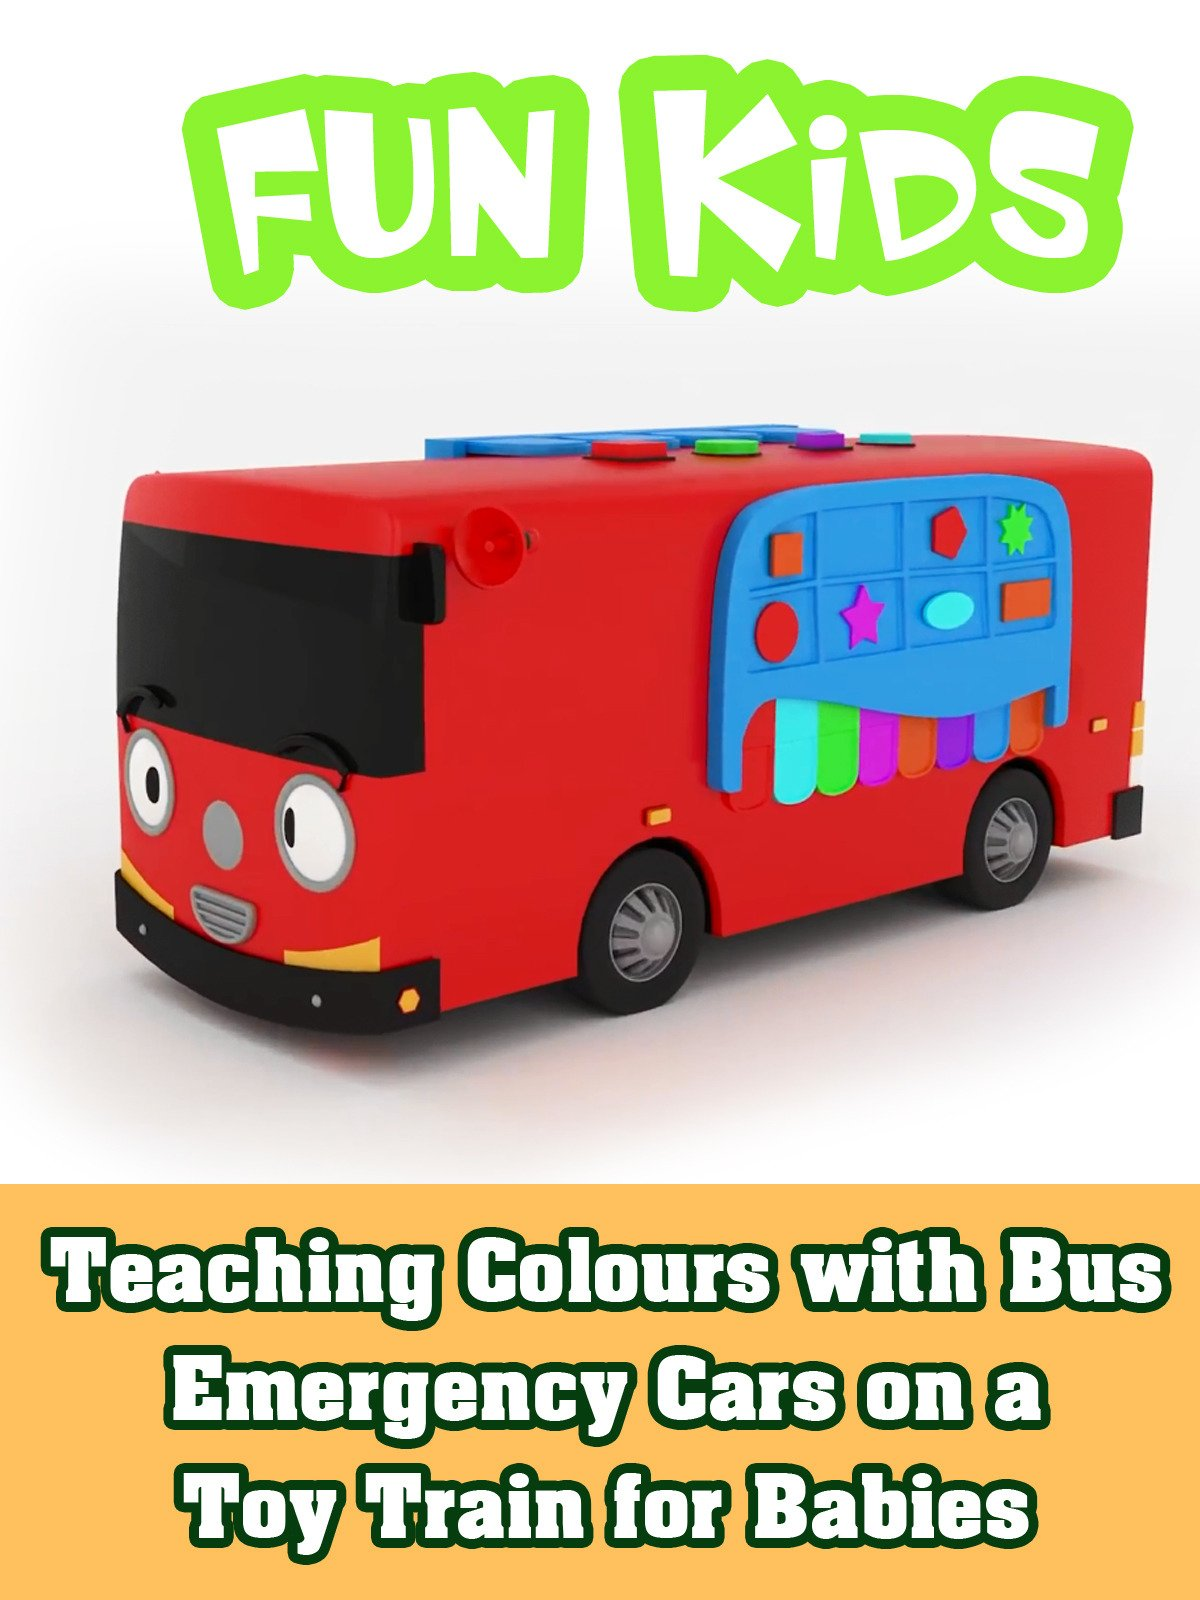 Teaching Colours with Bus Emergency Cars on a Toy Train for Babies